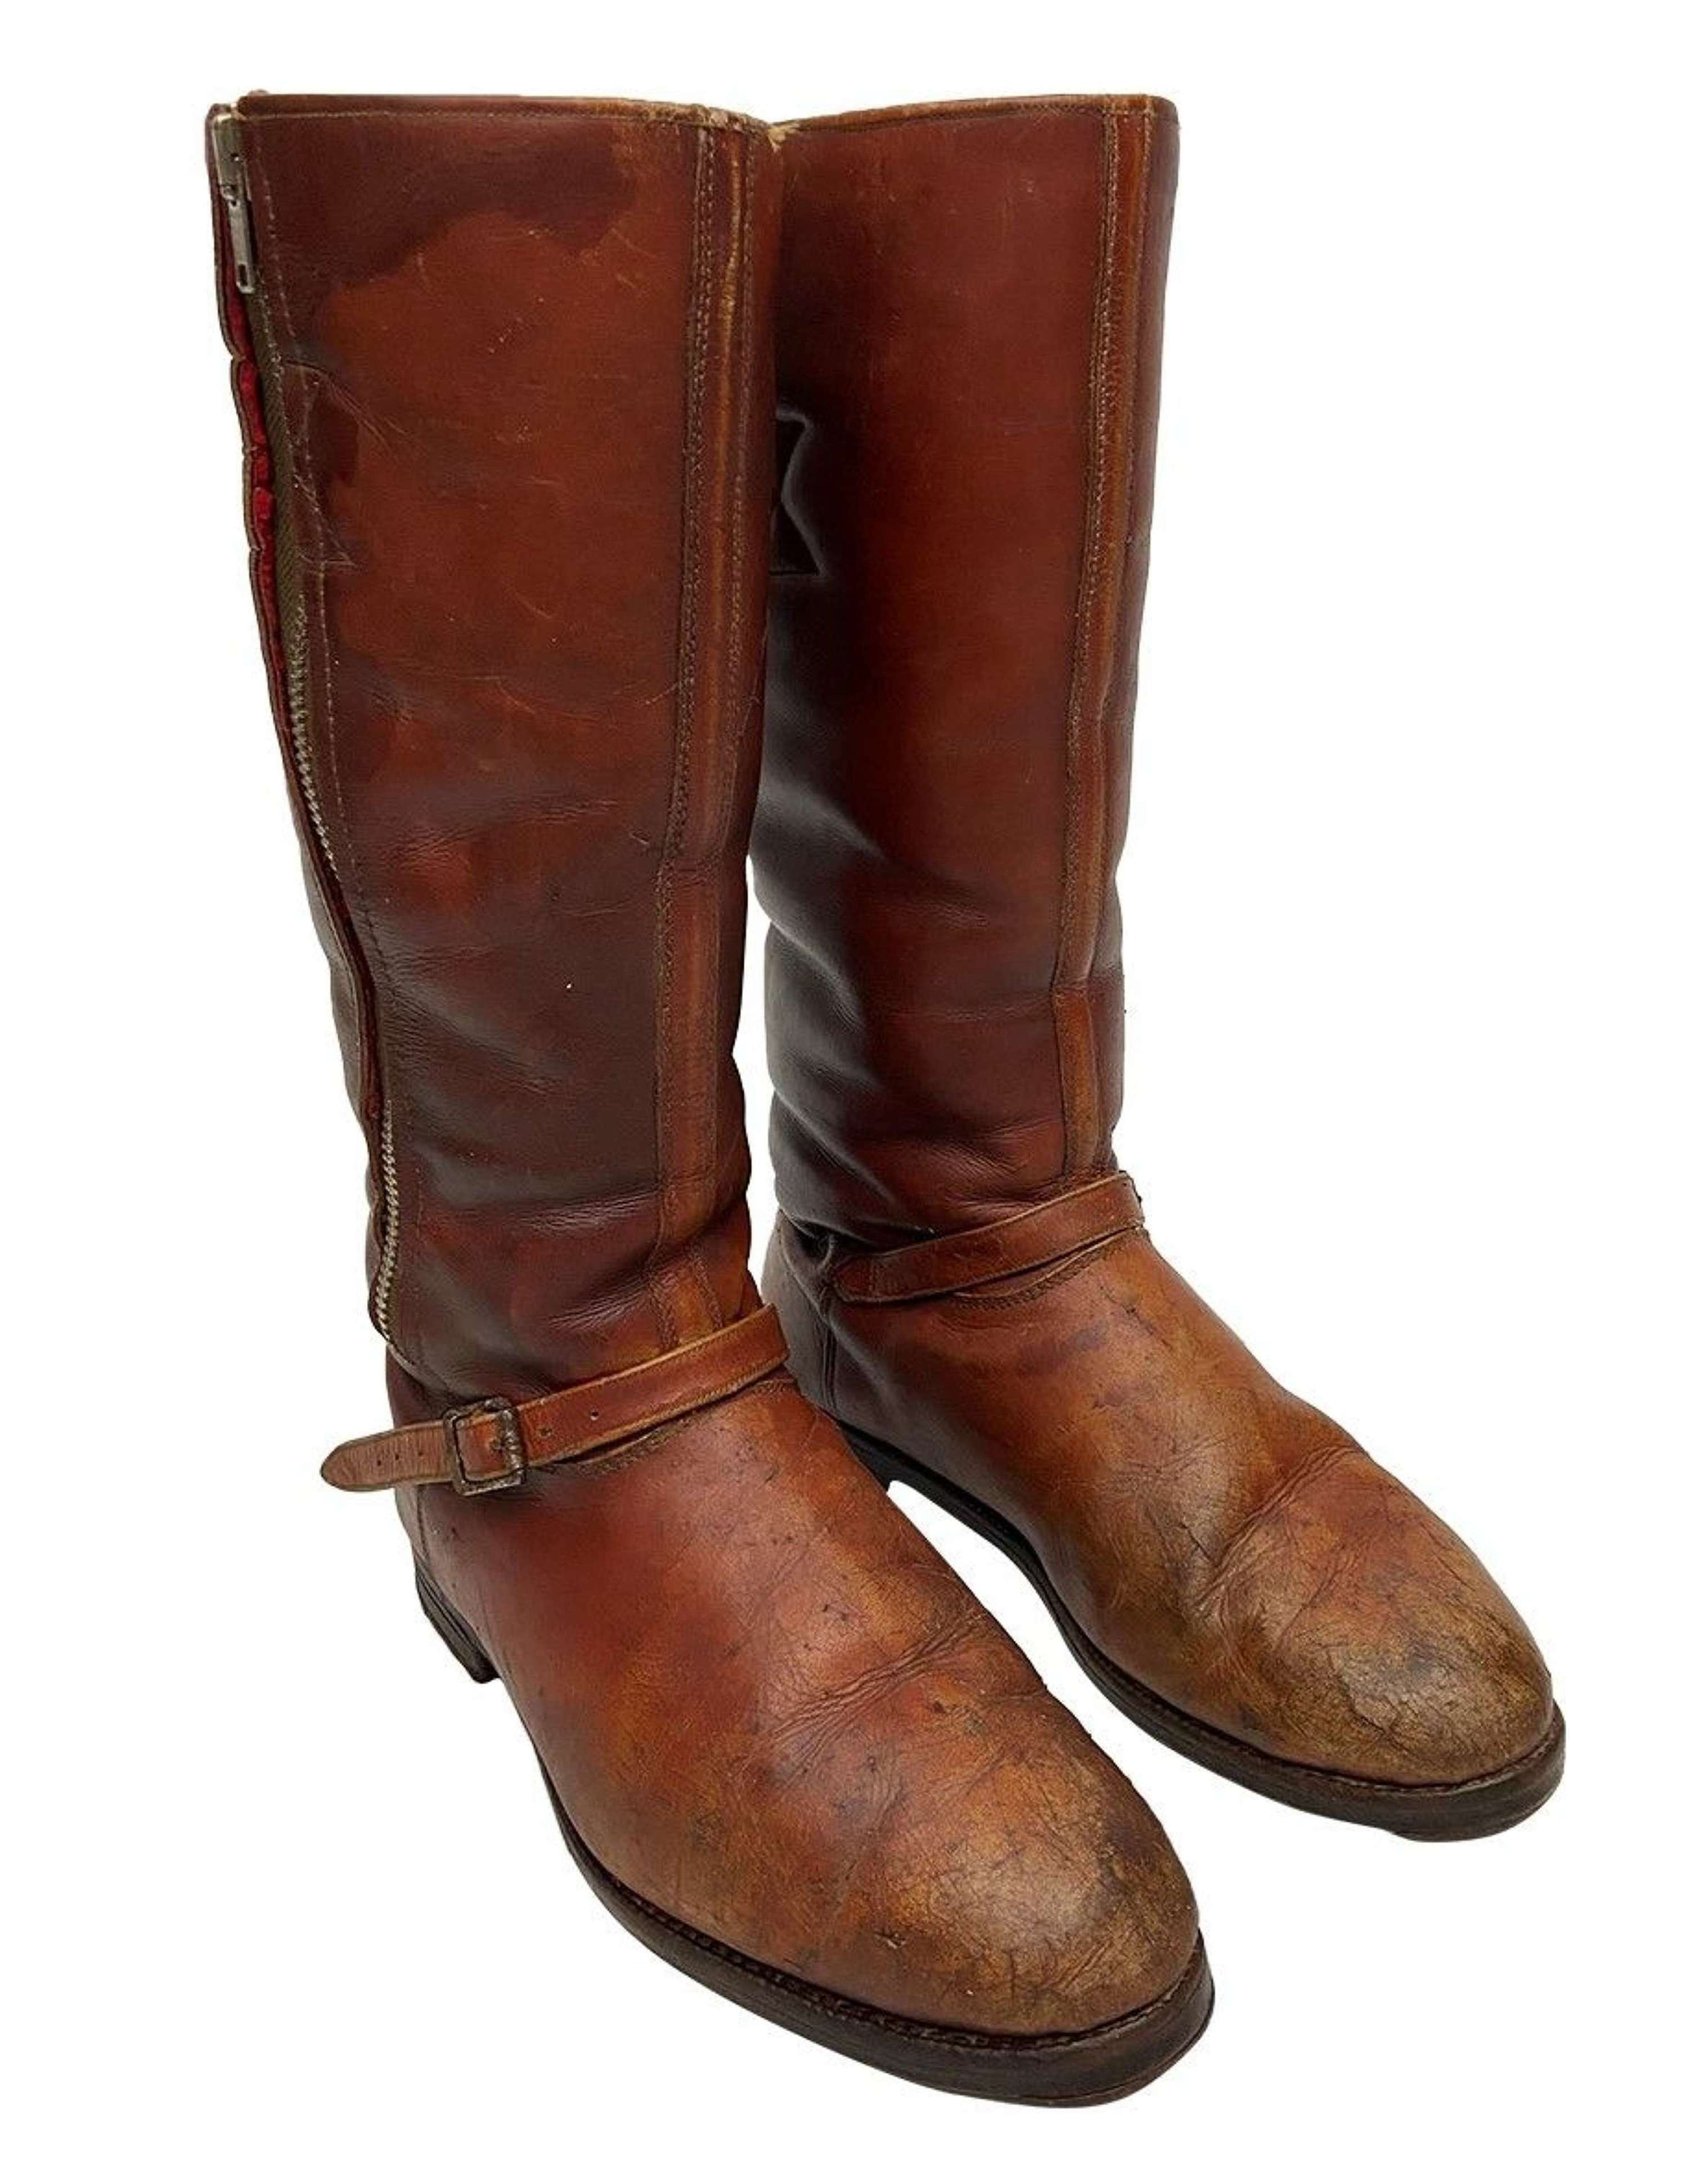 Original 1940s Brown Leather Flying Boots